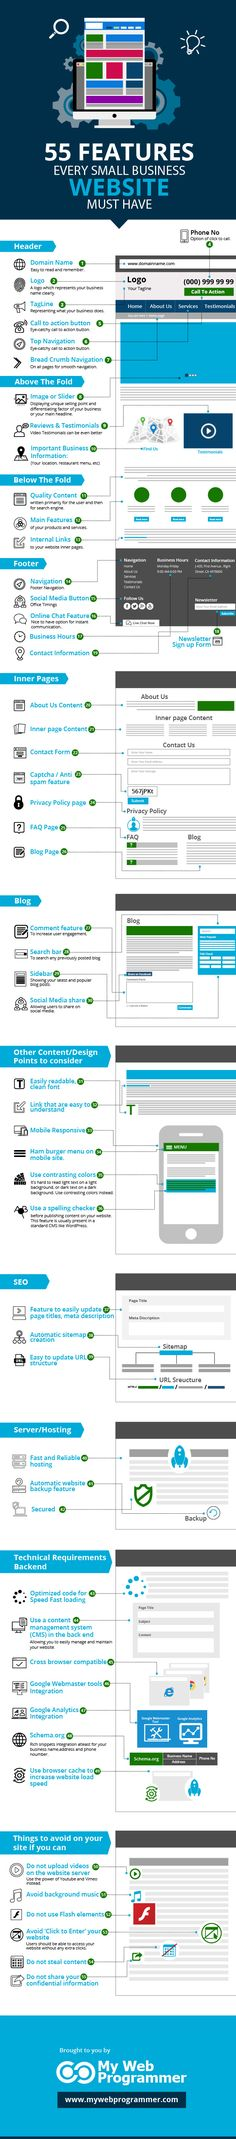 Infographic of 55 features every small business website must have.